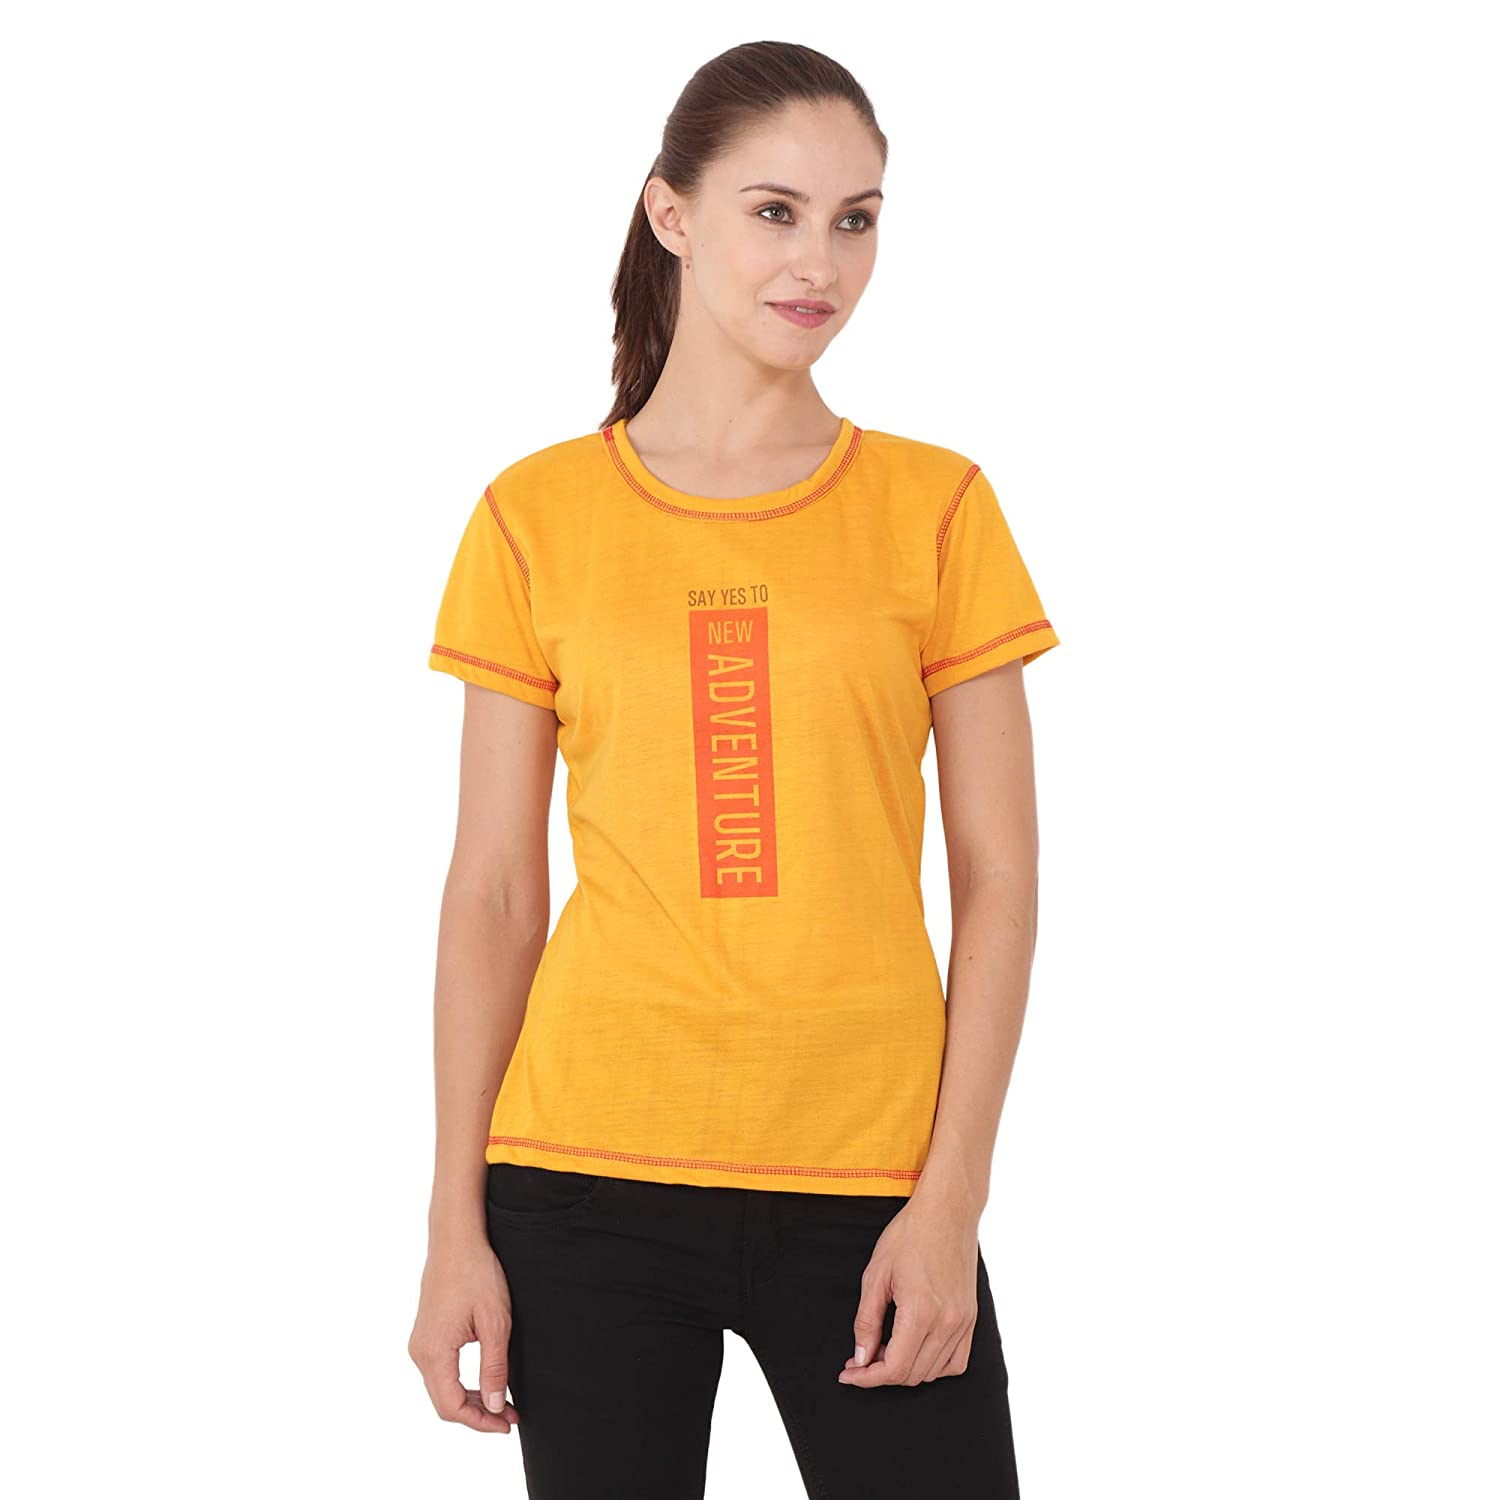 ac3da961 Chauhan Yellow Color, Half Sleeve, Printed Trendy T-Shirt: Amazon.in:  Clothing & Accessories